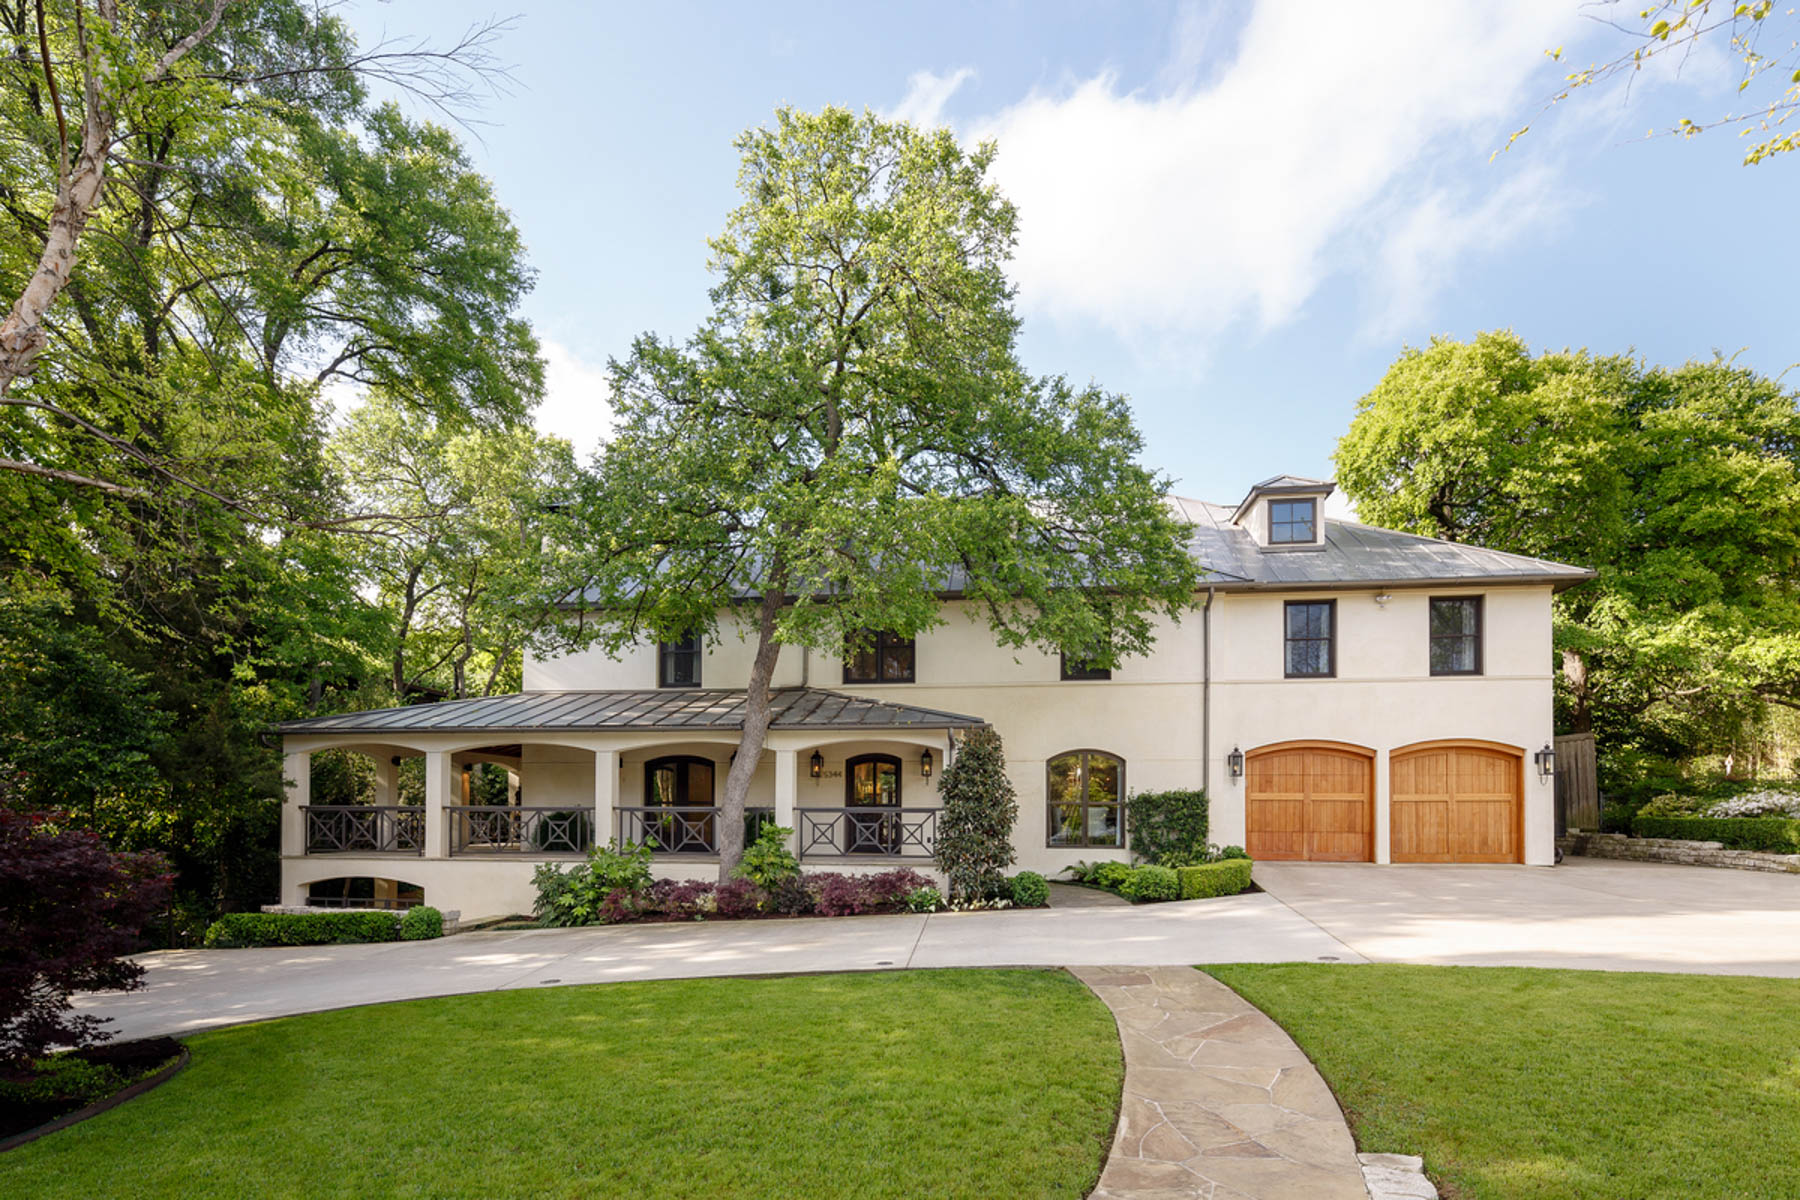 단독 가정 주택 용 매매 에 Santa Barbara Style Home on Half an Acre 5344 Surrey Circle Dallas, 텍사스, 75209 미국